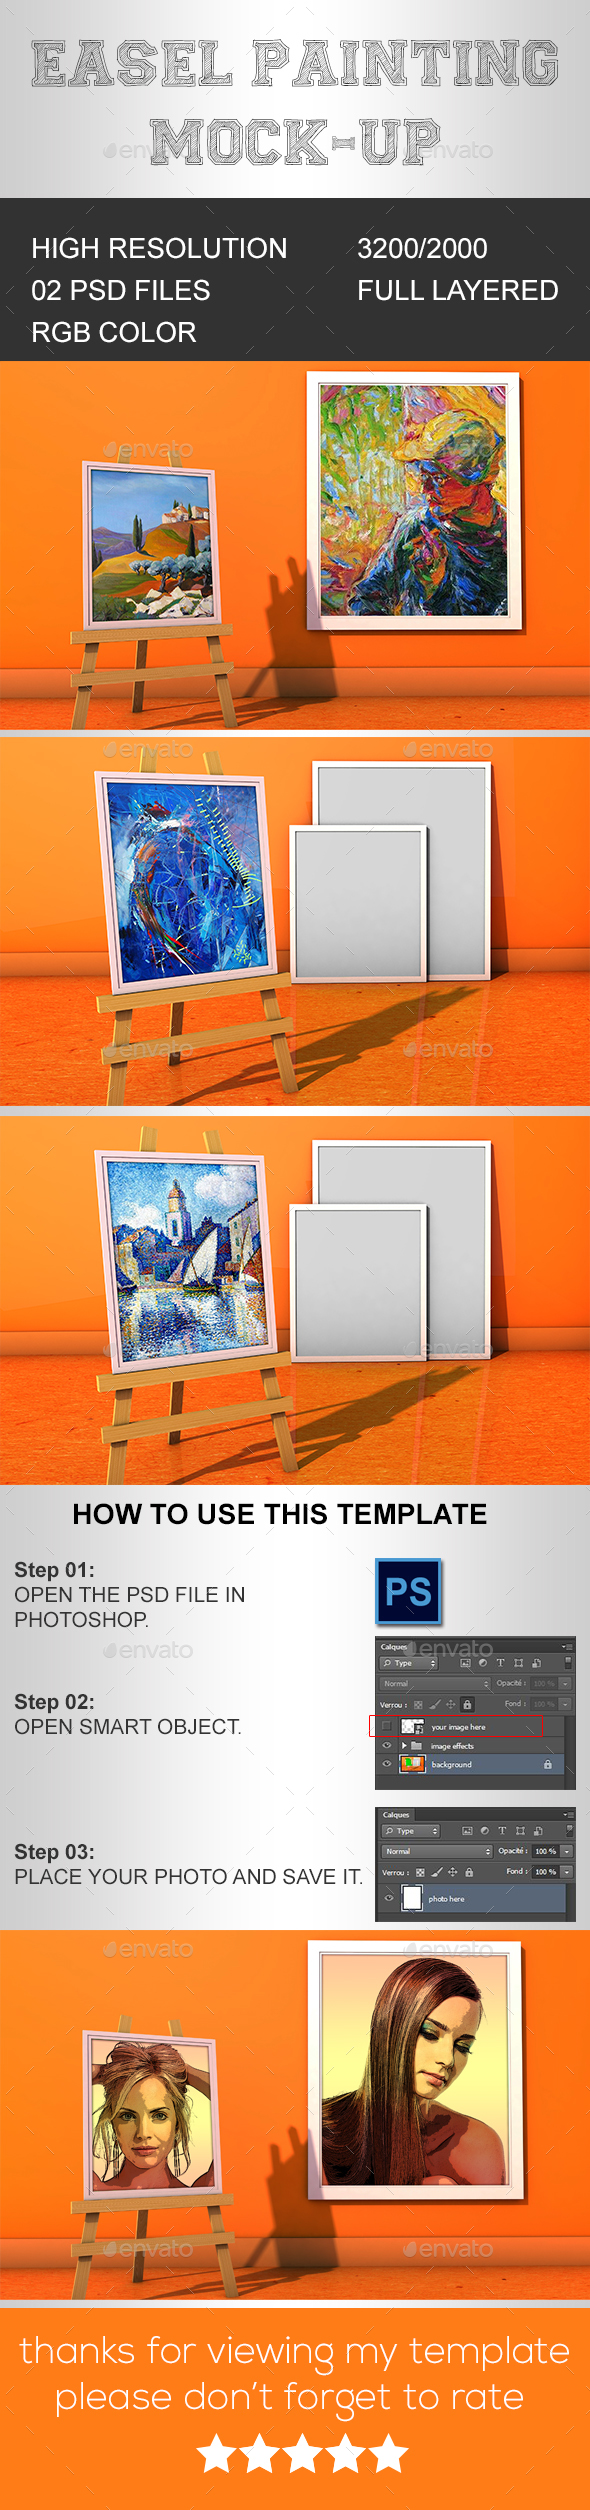 Easel Painting Mock-up (Artistic)